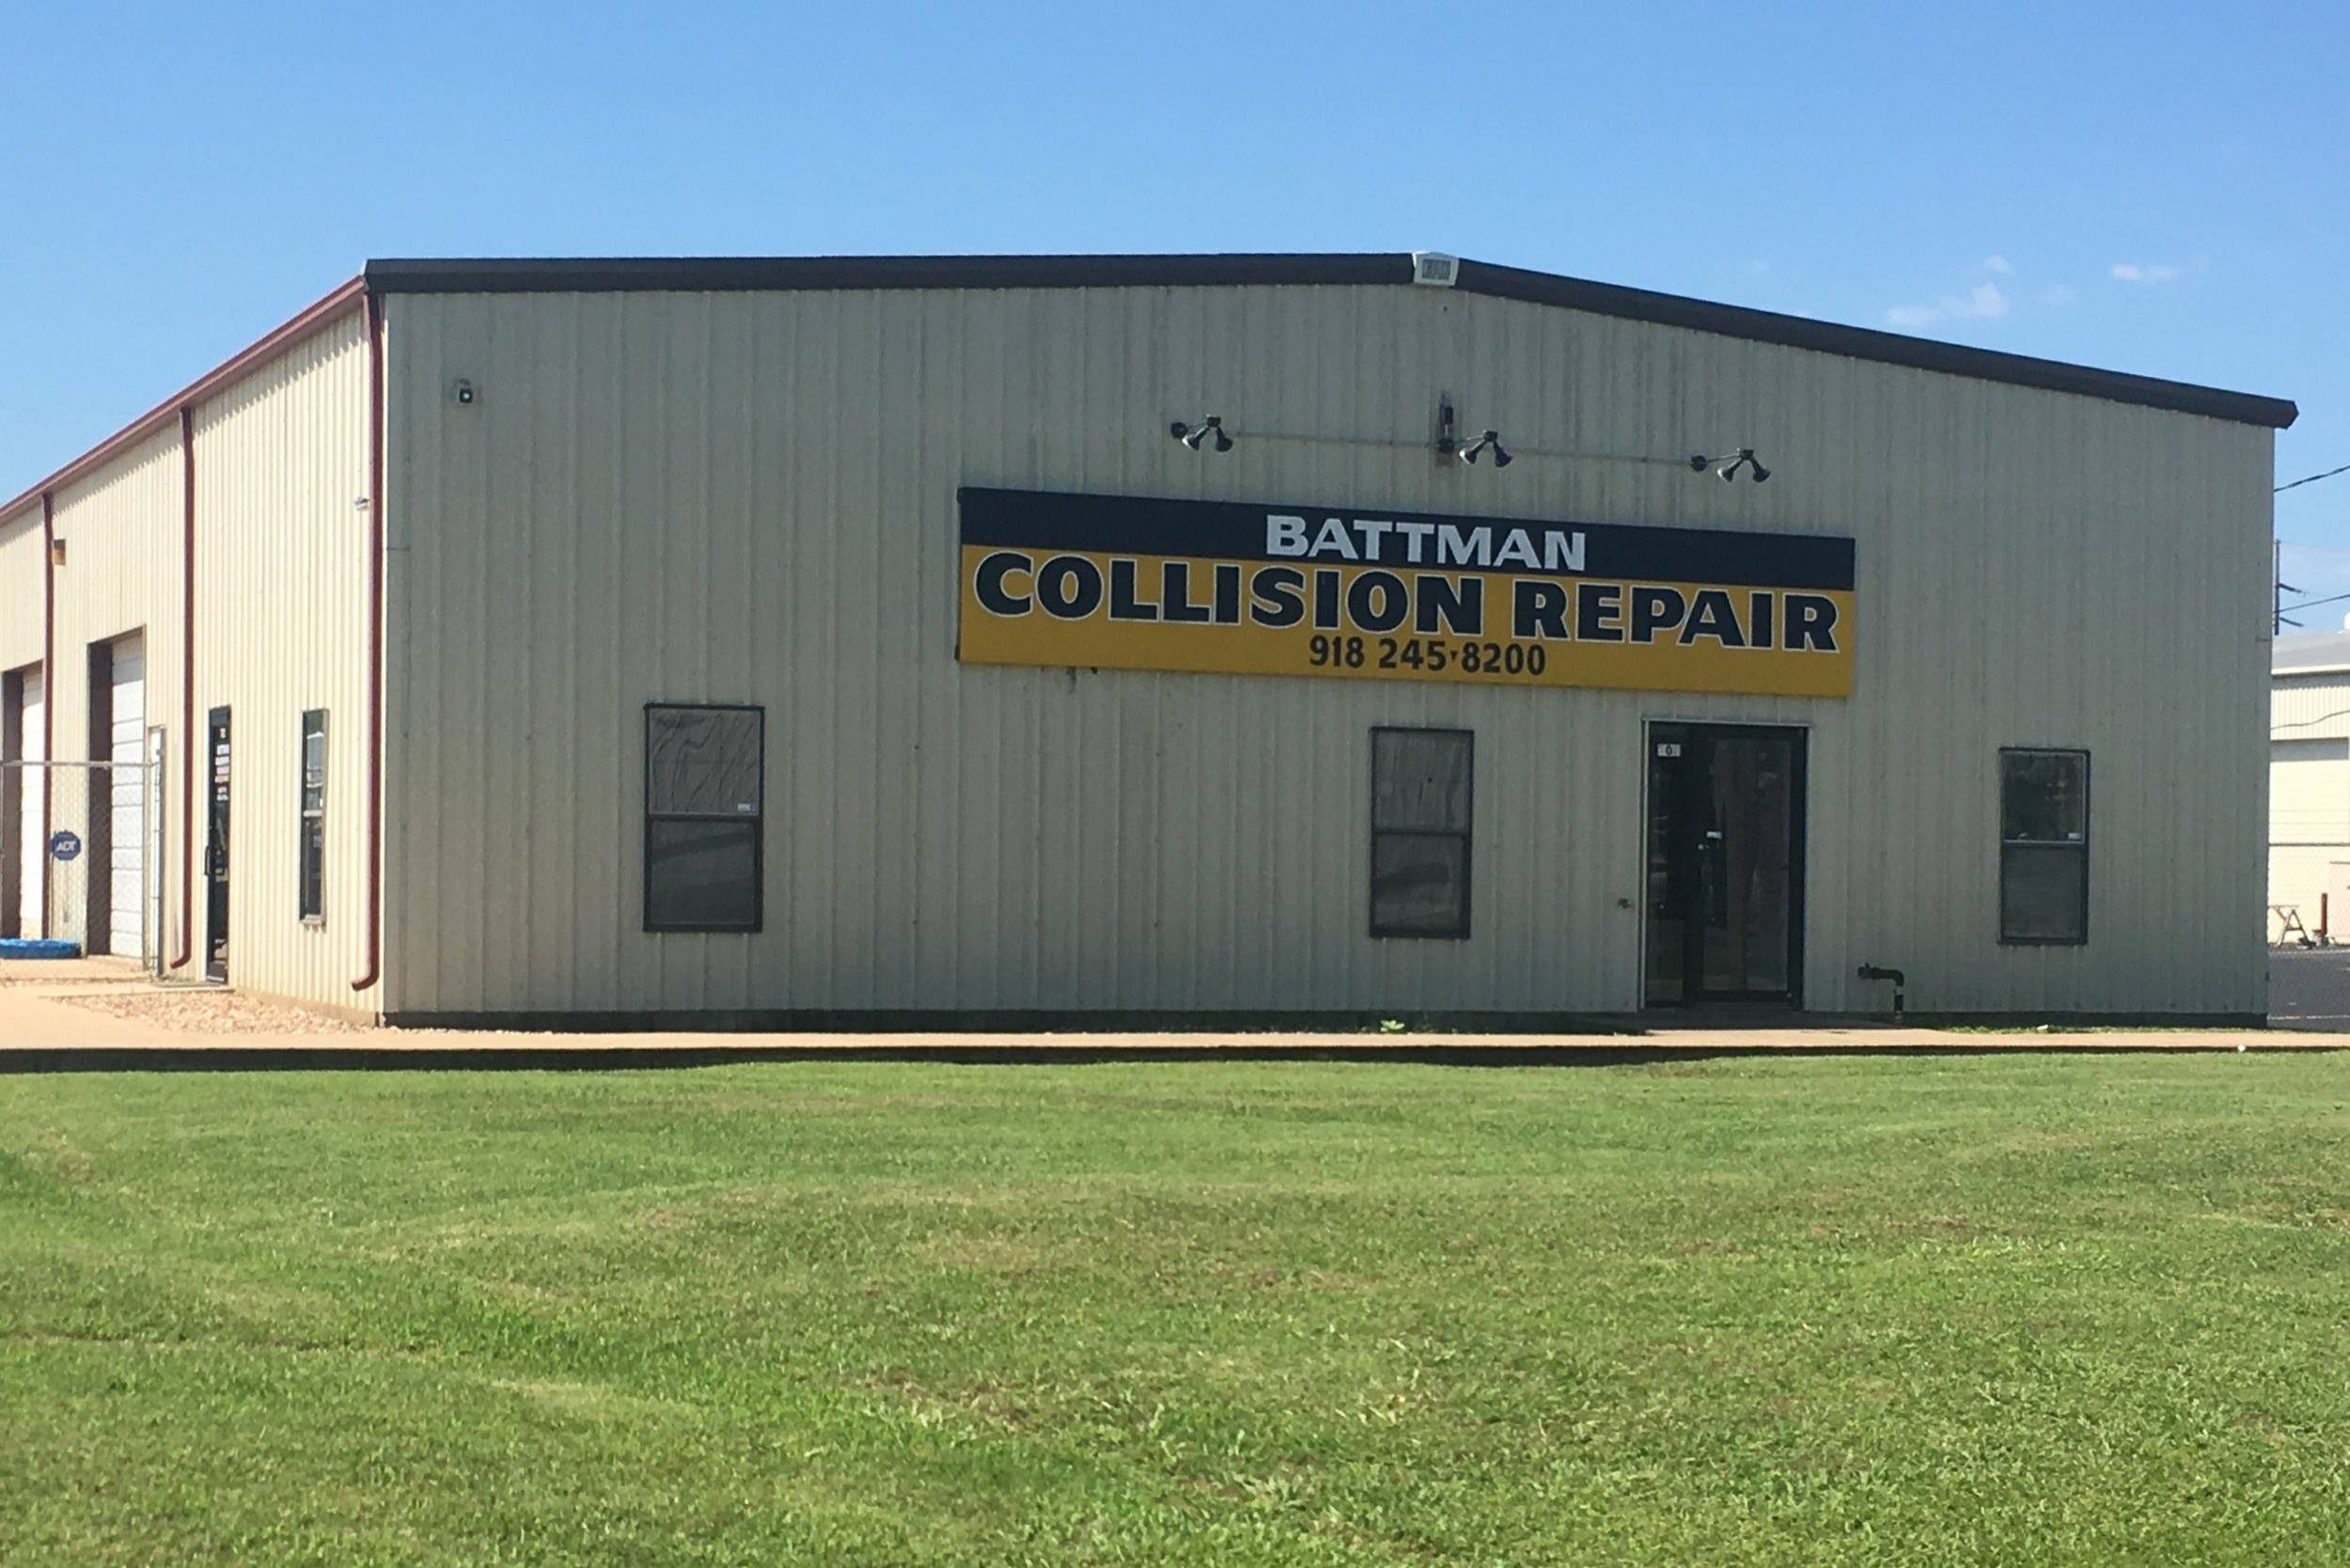 battman collision repair 702 east pecan street south